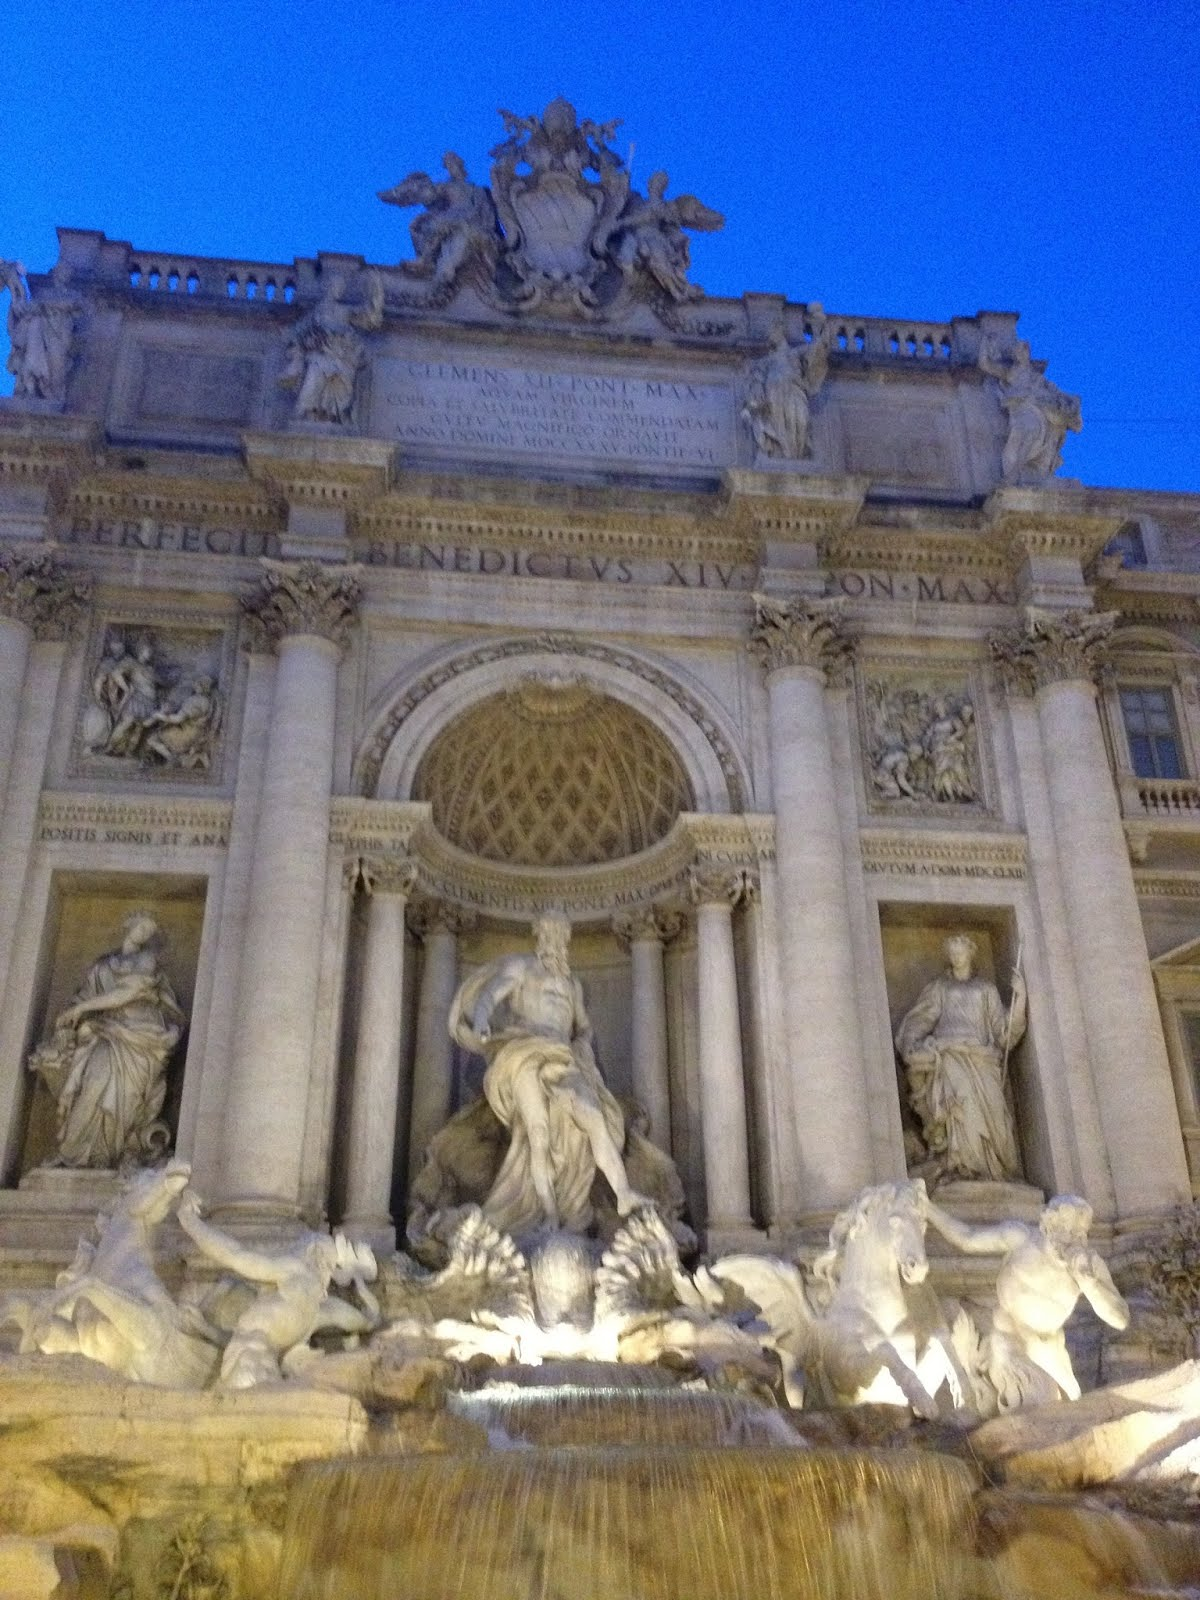 Trevi Fountain - Fountains of Rome